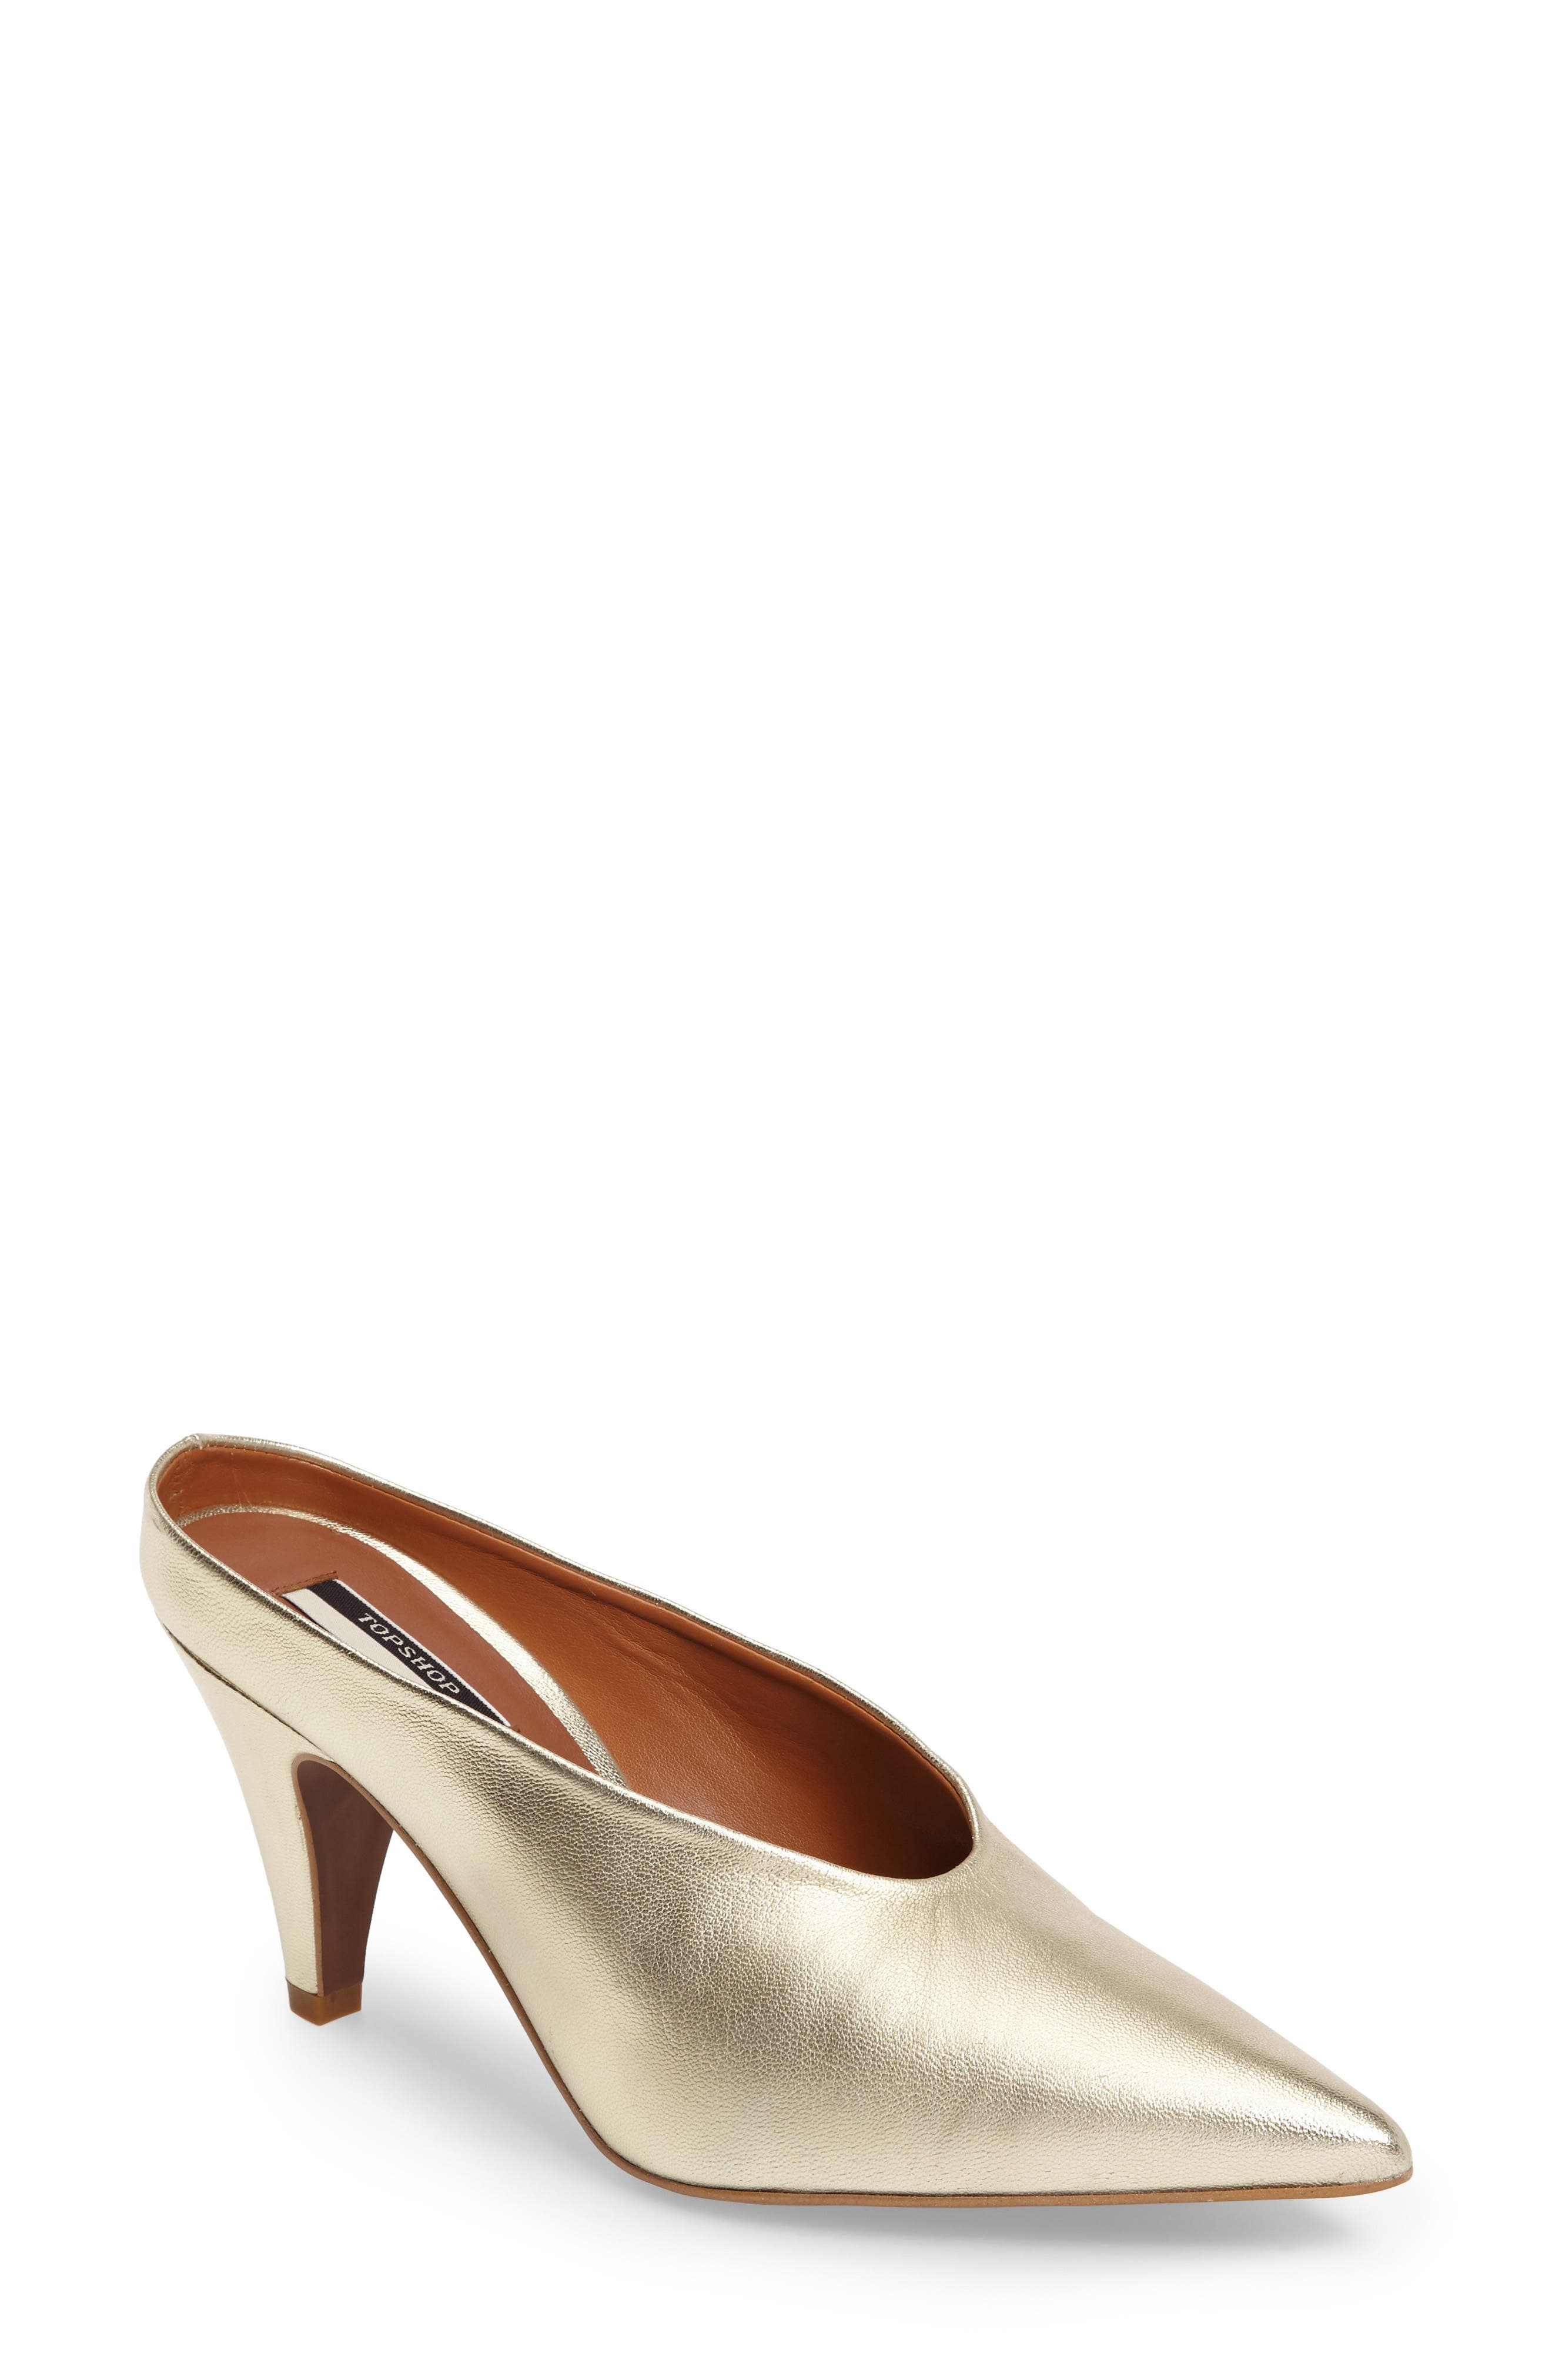 Juicy Pointy Toe Pump,                             Main thumbnail 1, color,                             Gold Leather